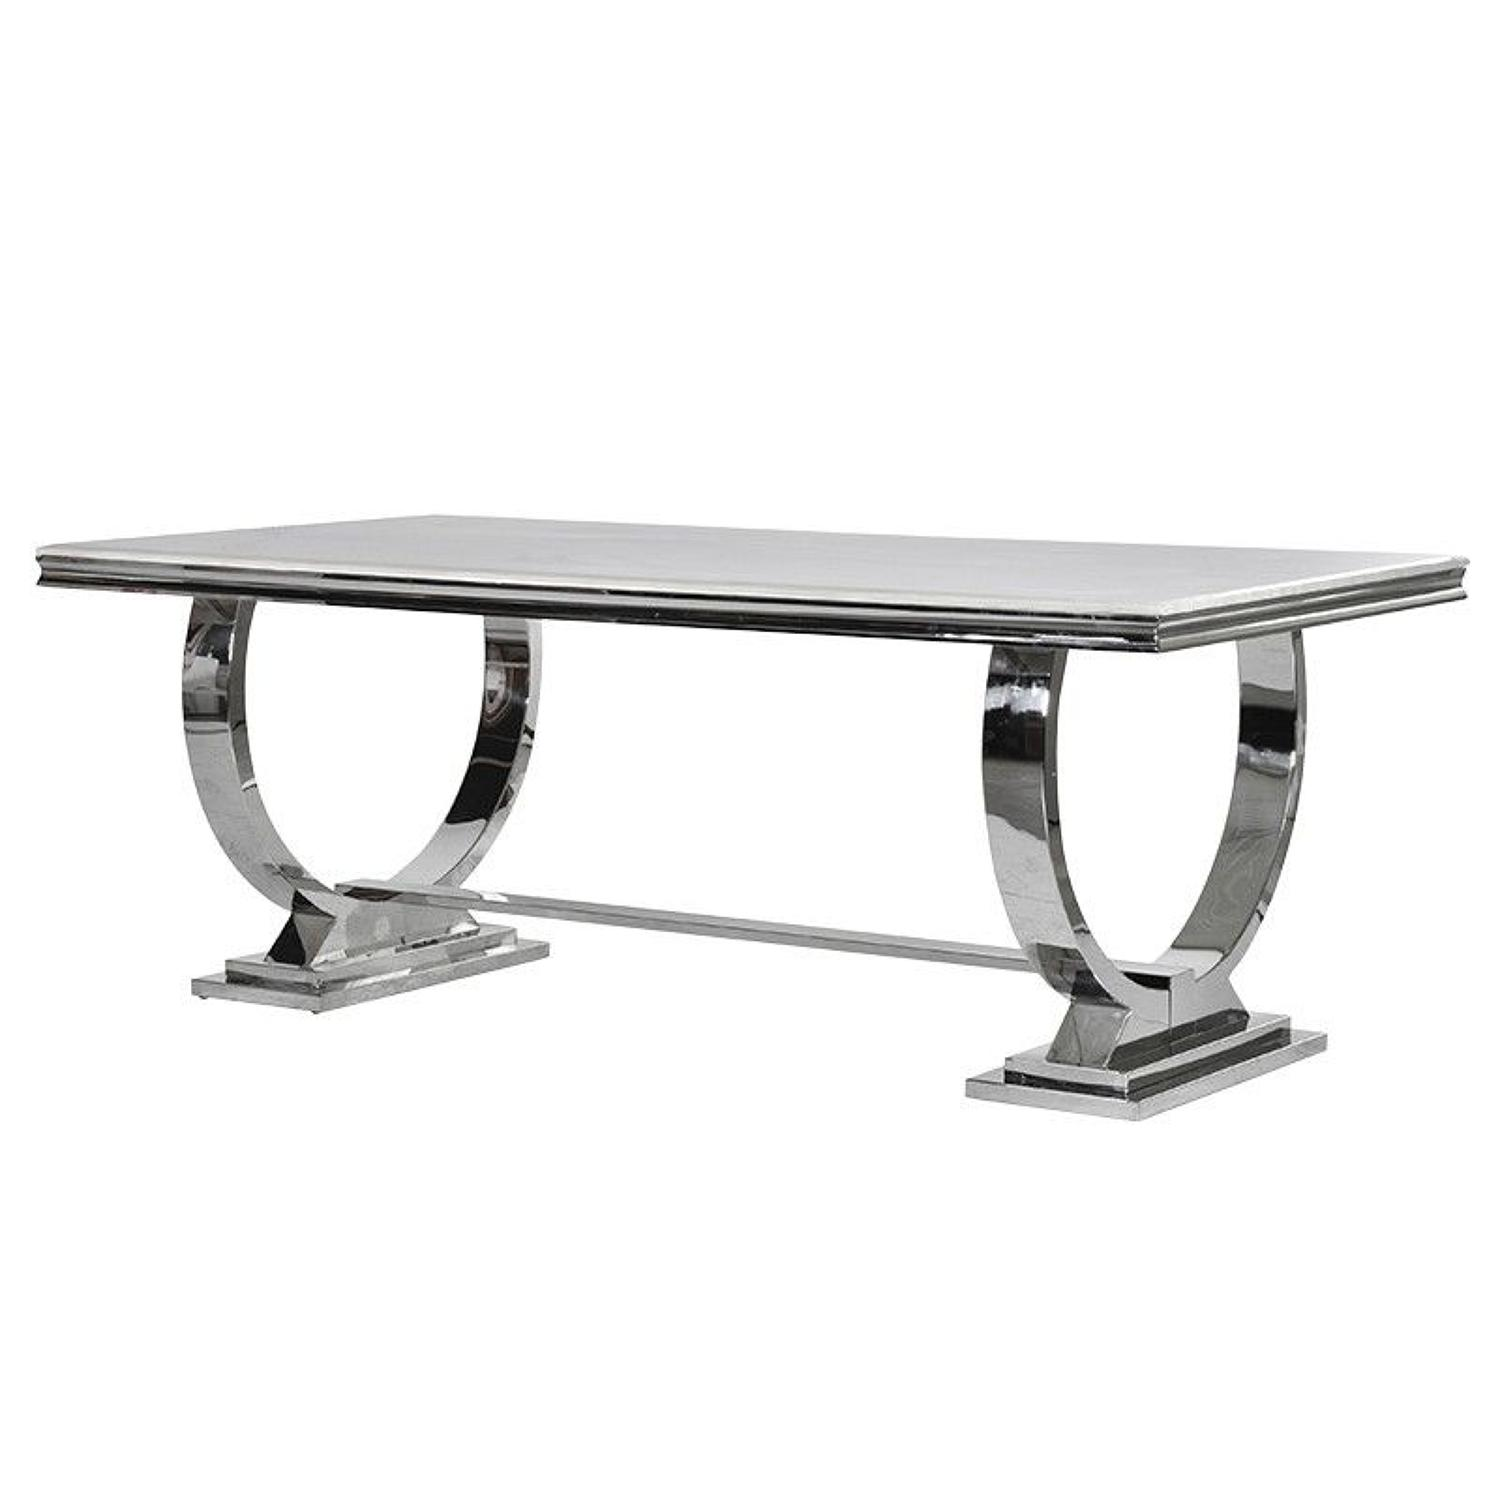 Steel, circular framed dining table with composite marble top